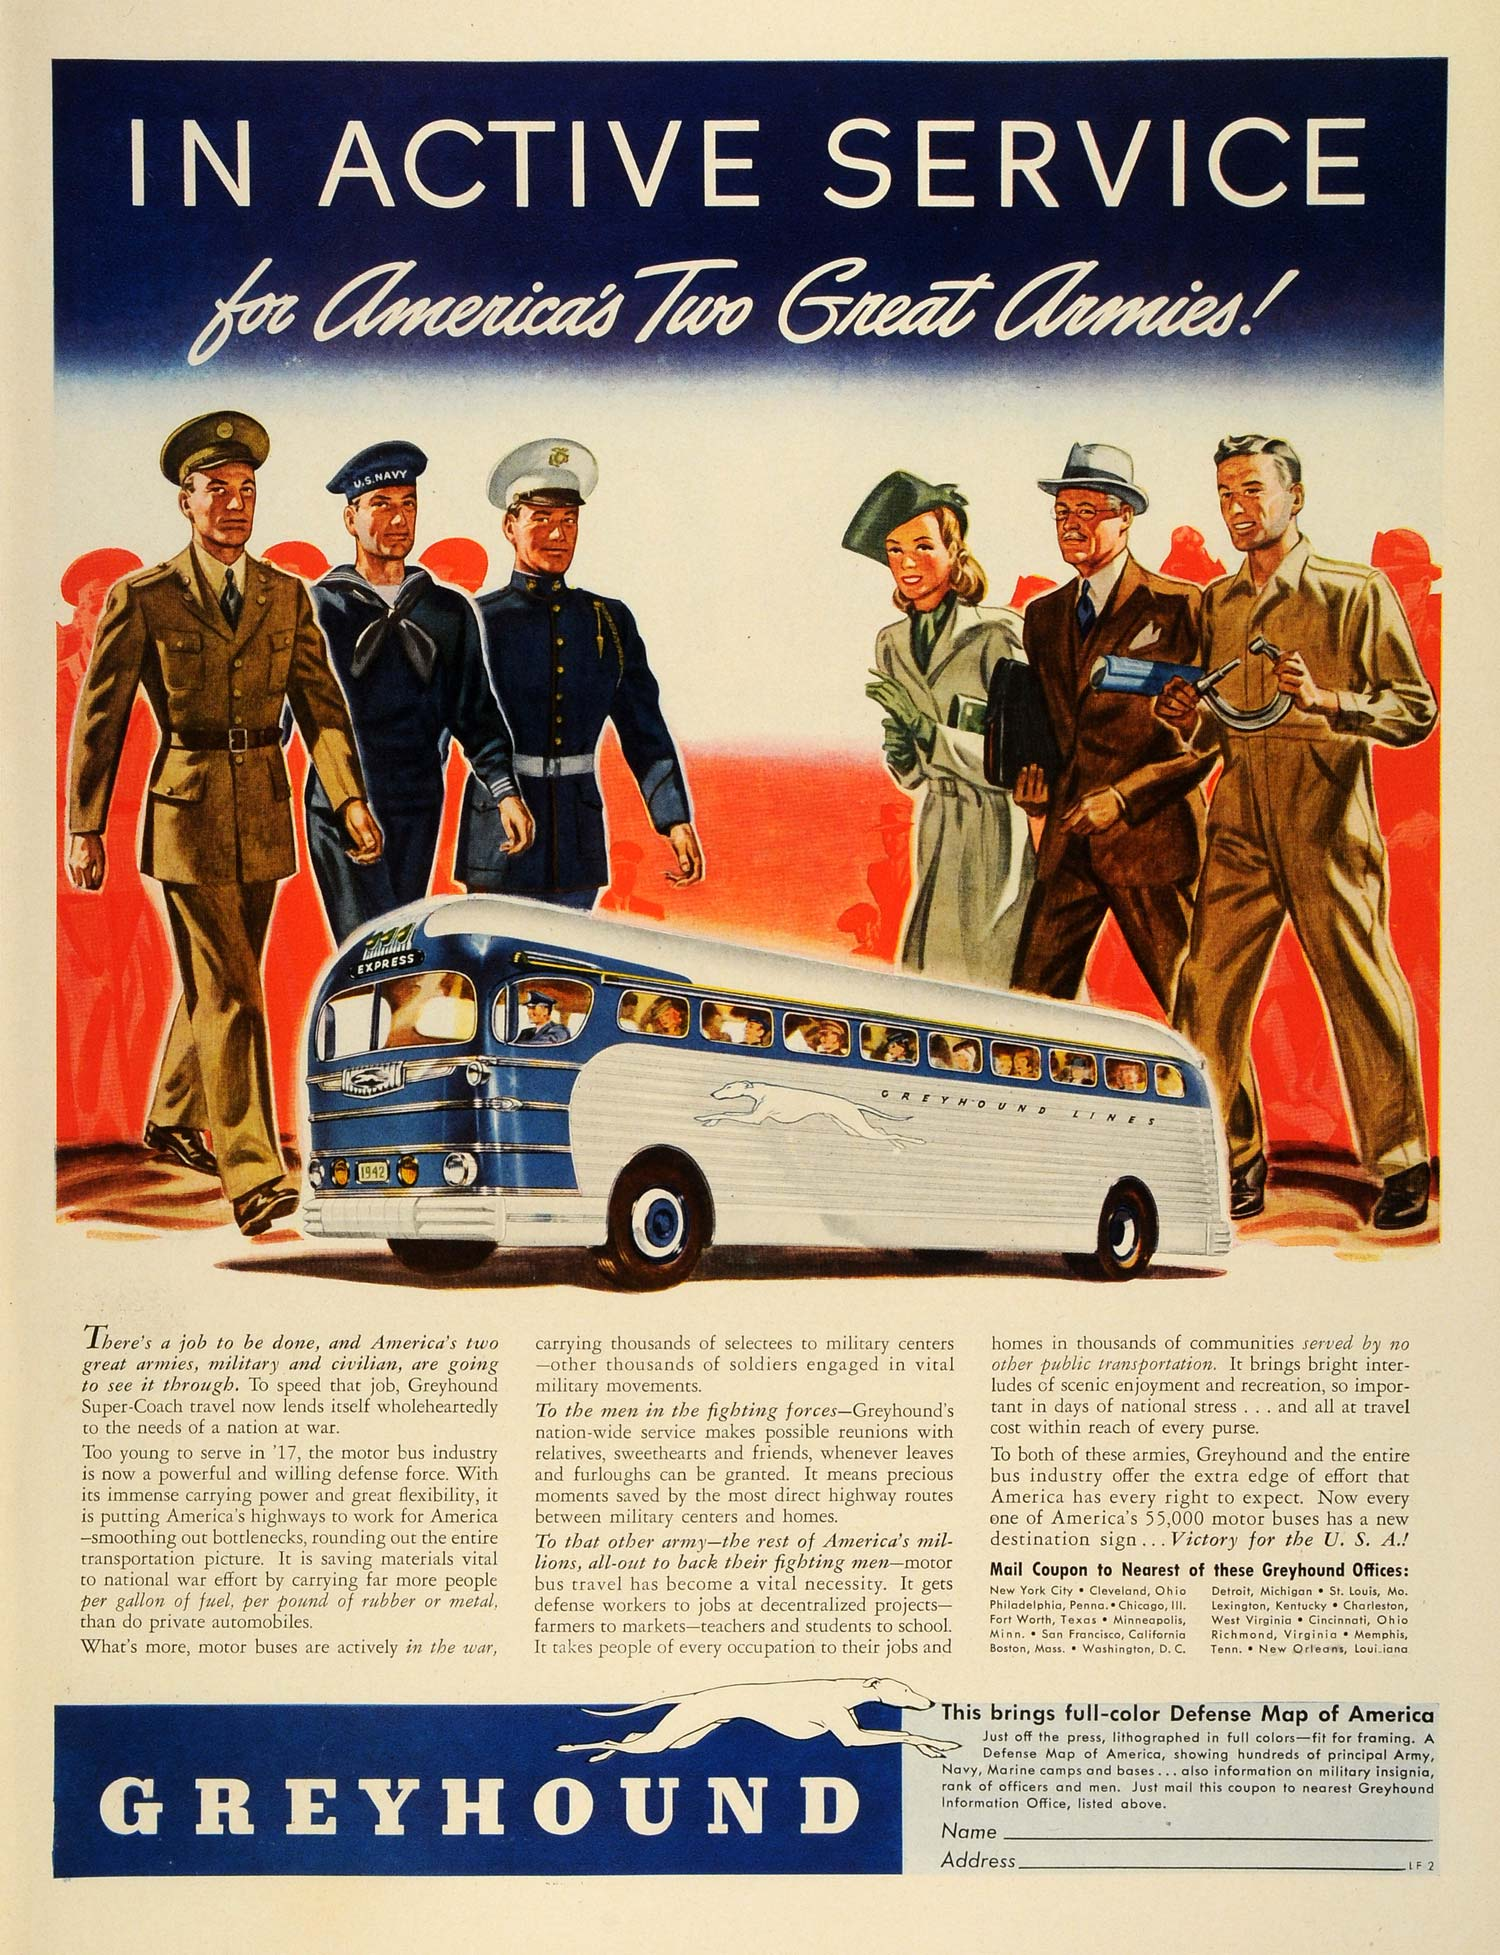 1942 Ad Greyhound Bus Travel Military Active Duty WWII Army Navy Marines LF4